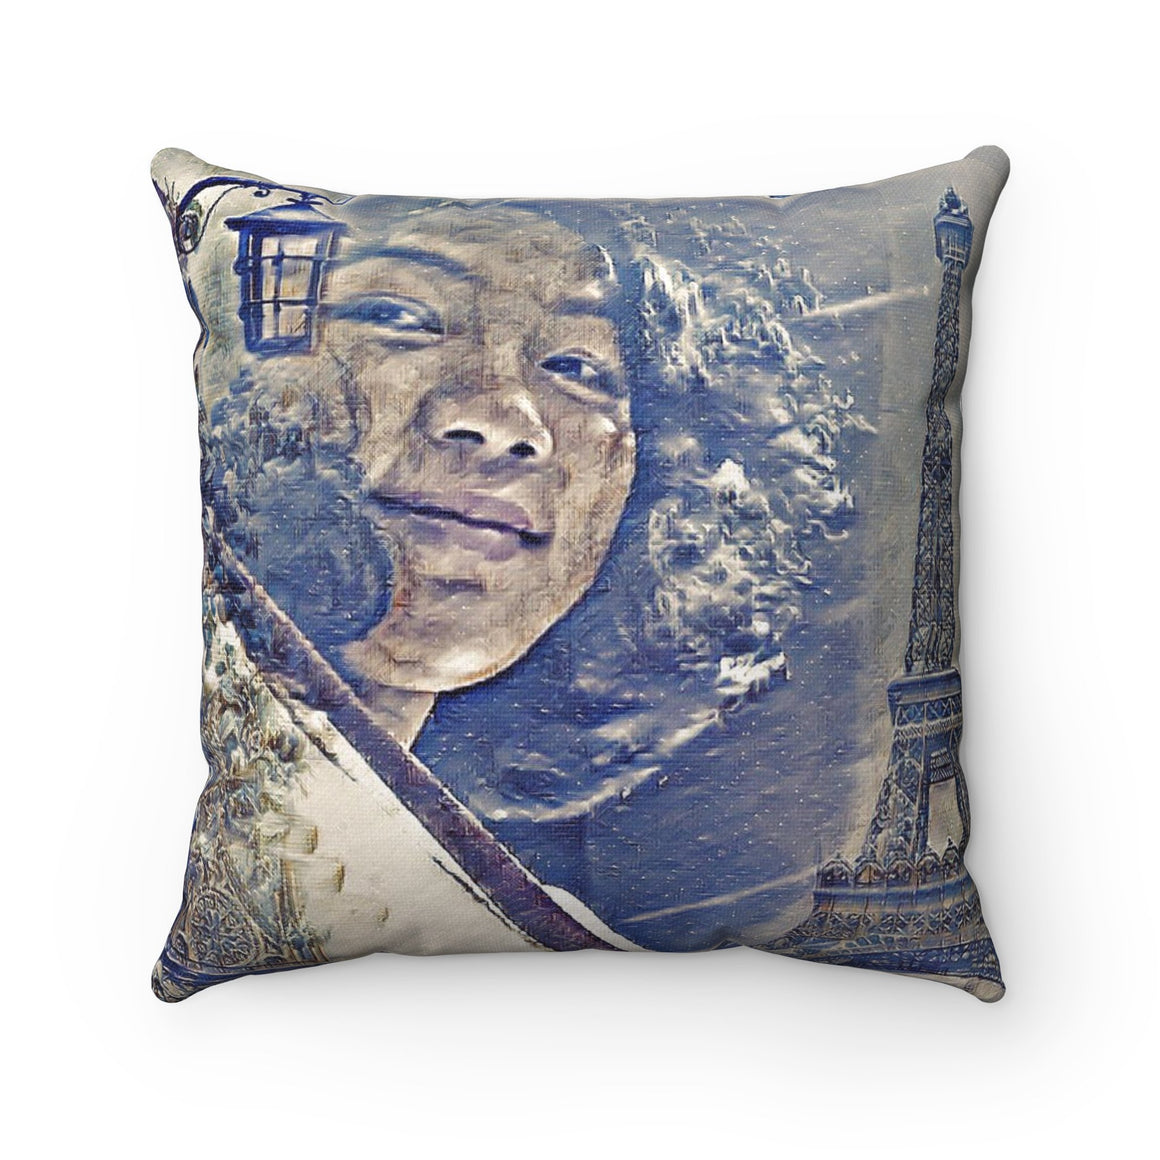 Levi Thang Vintage Face Design O Spun Polyester Square Pillow Case